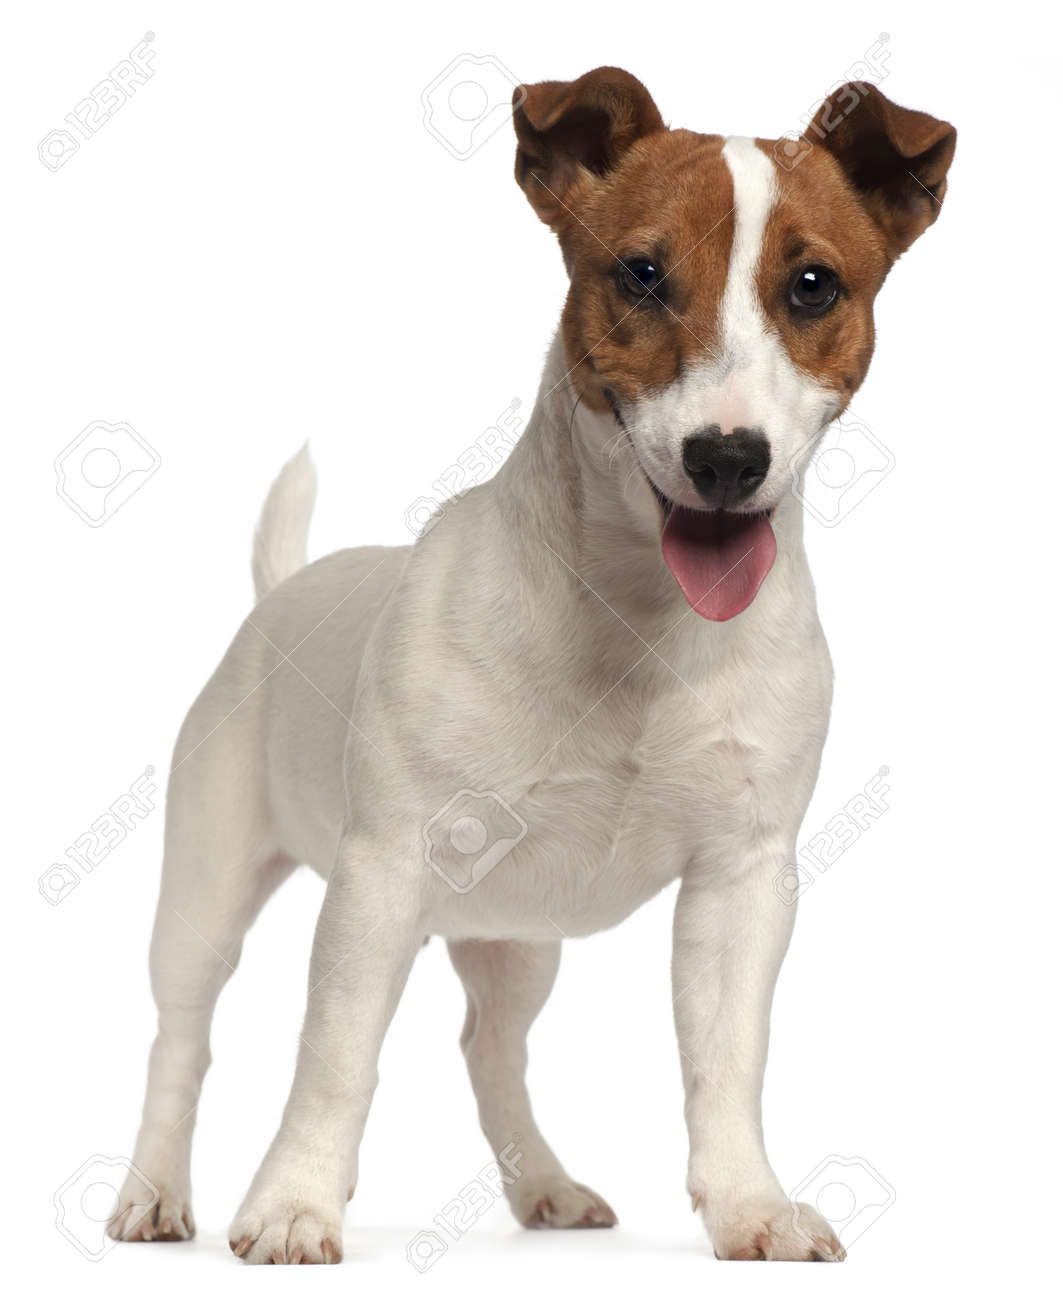 Jack Russell Terrier puppy, 6 months old, standing in front of white background Stock Photo - 9749046